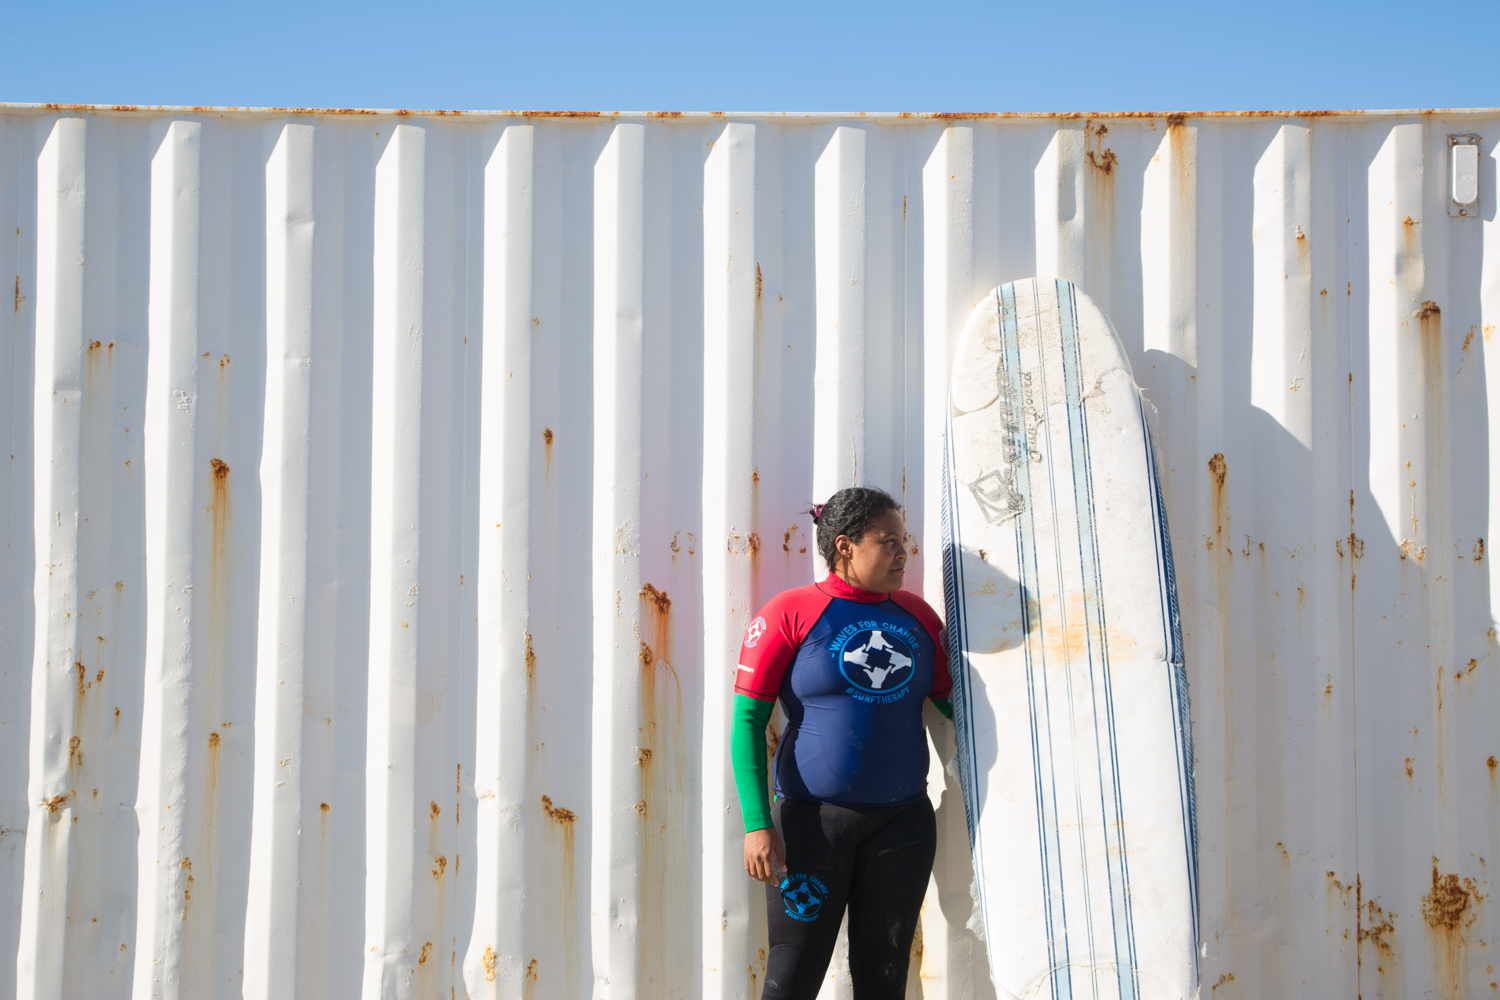 Melreen Devilliers from Waves For Change standing next to a surfboard